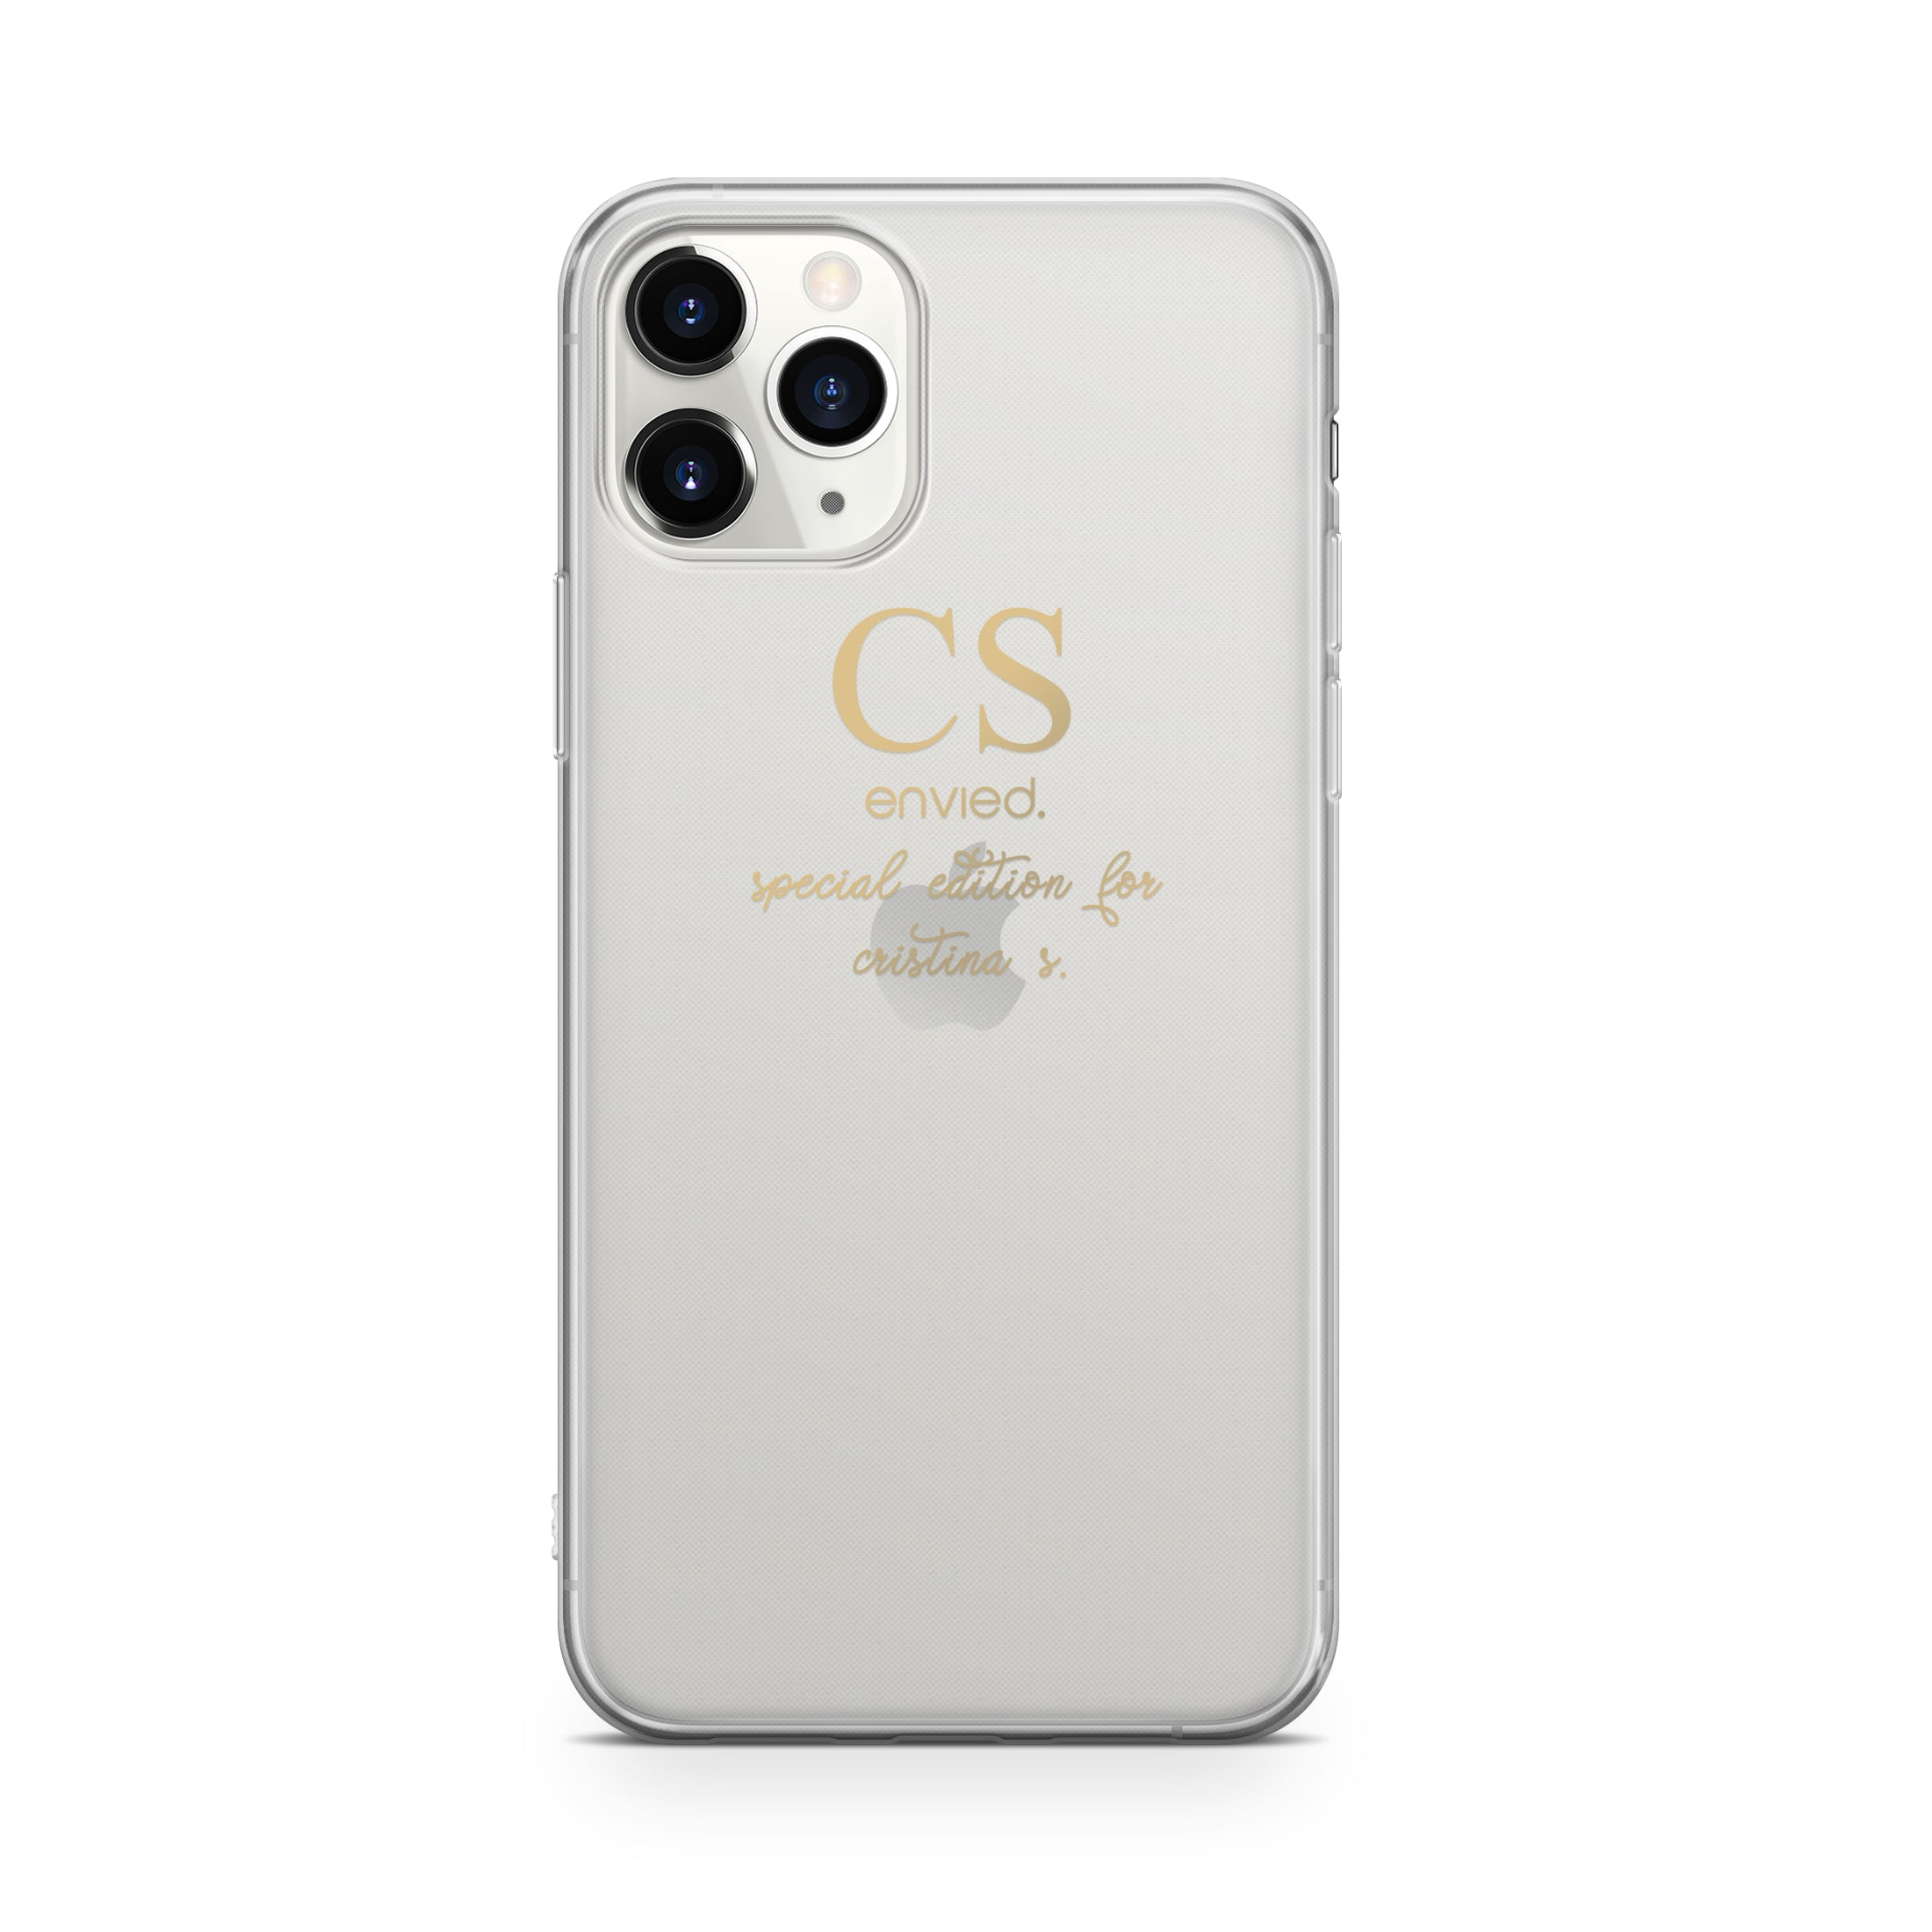 envied. precious gold initials case with special edition for iPhone